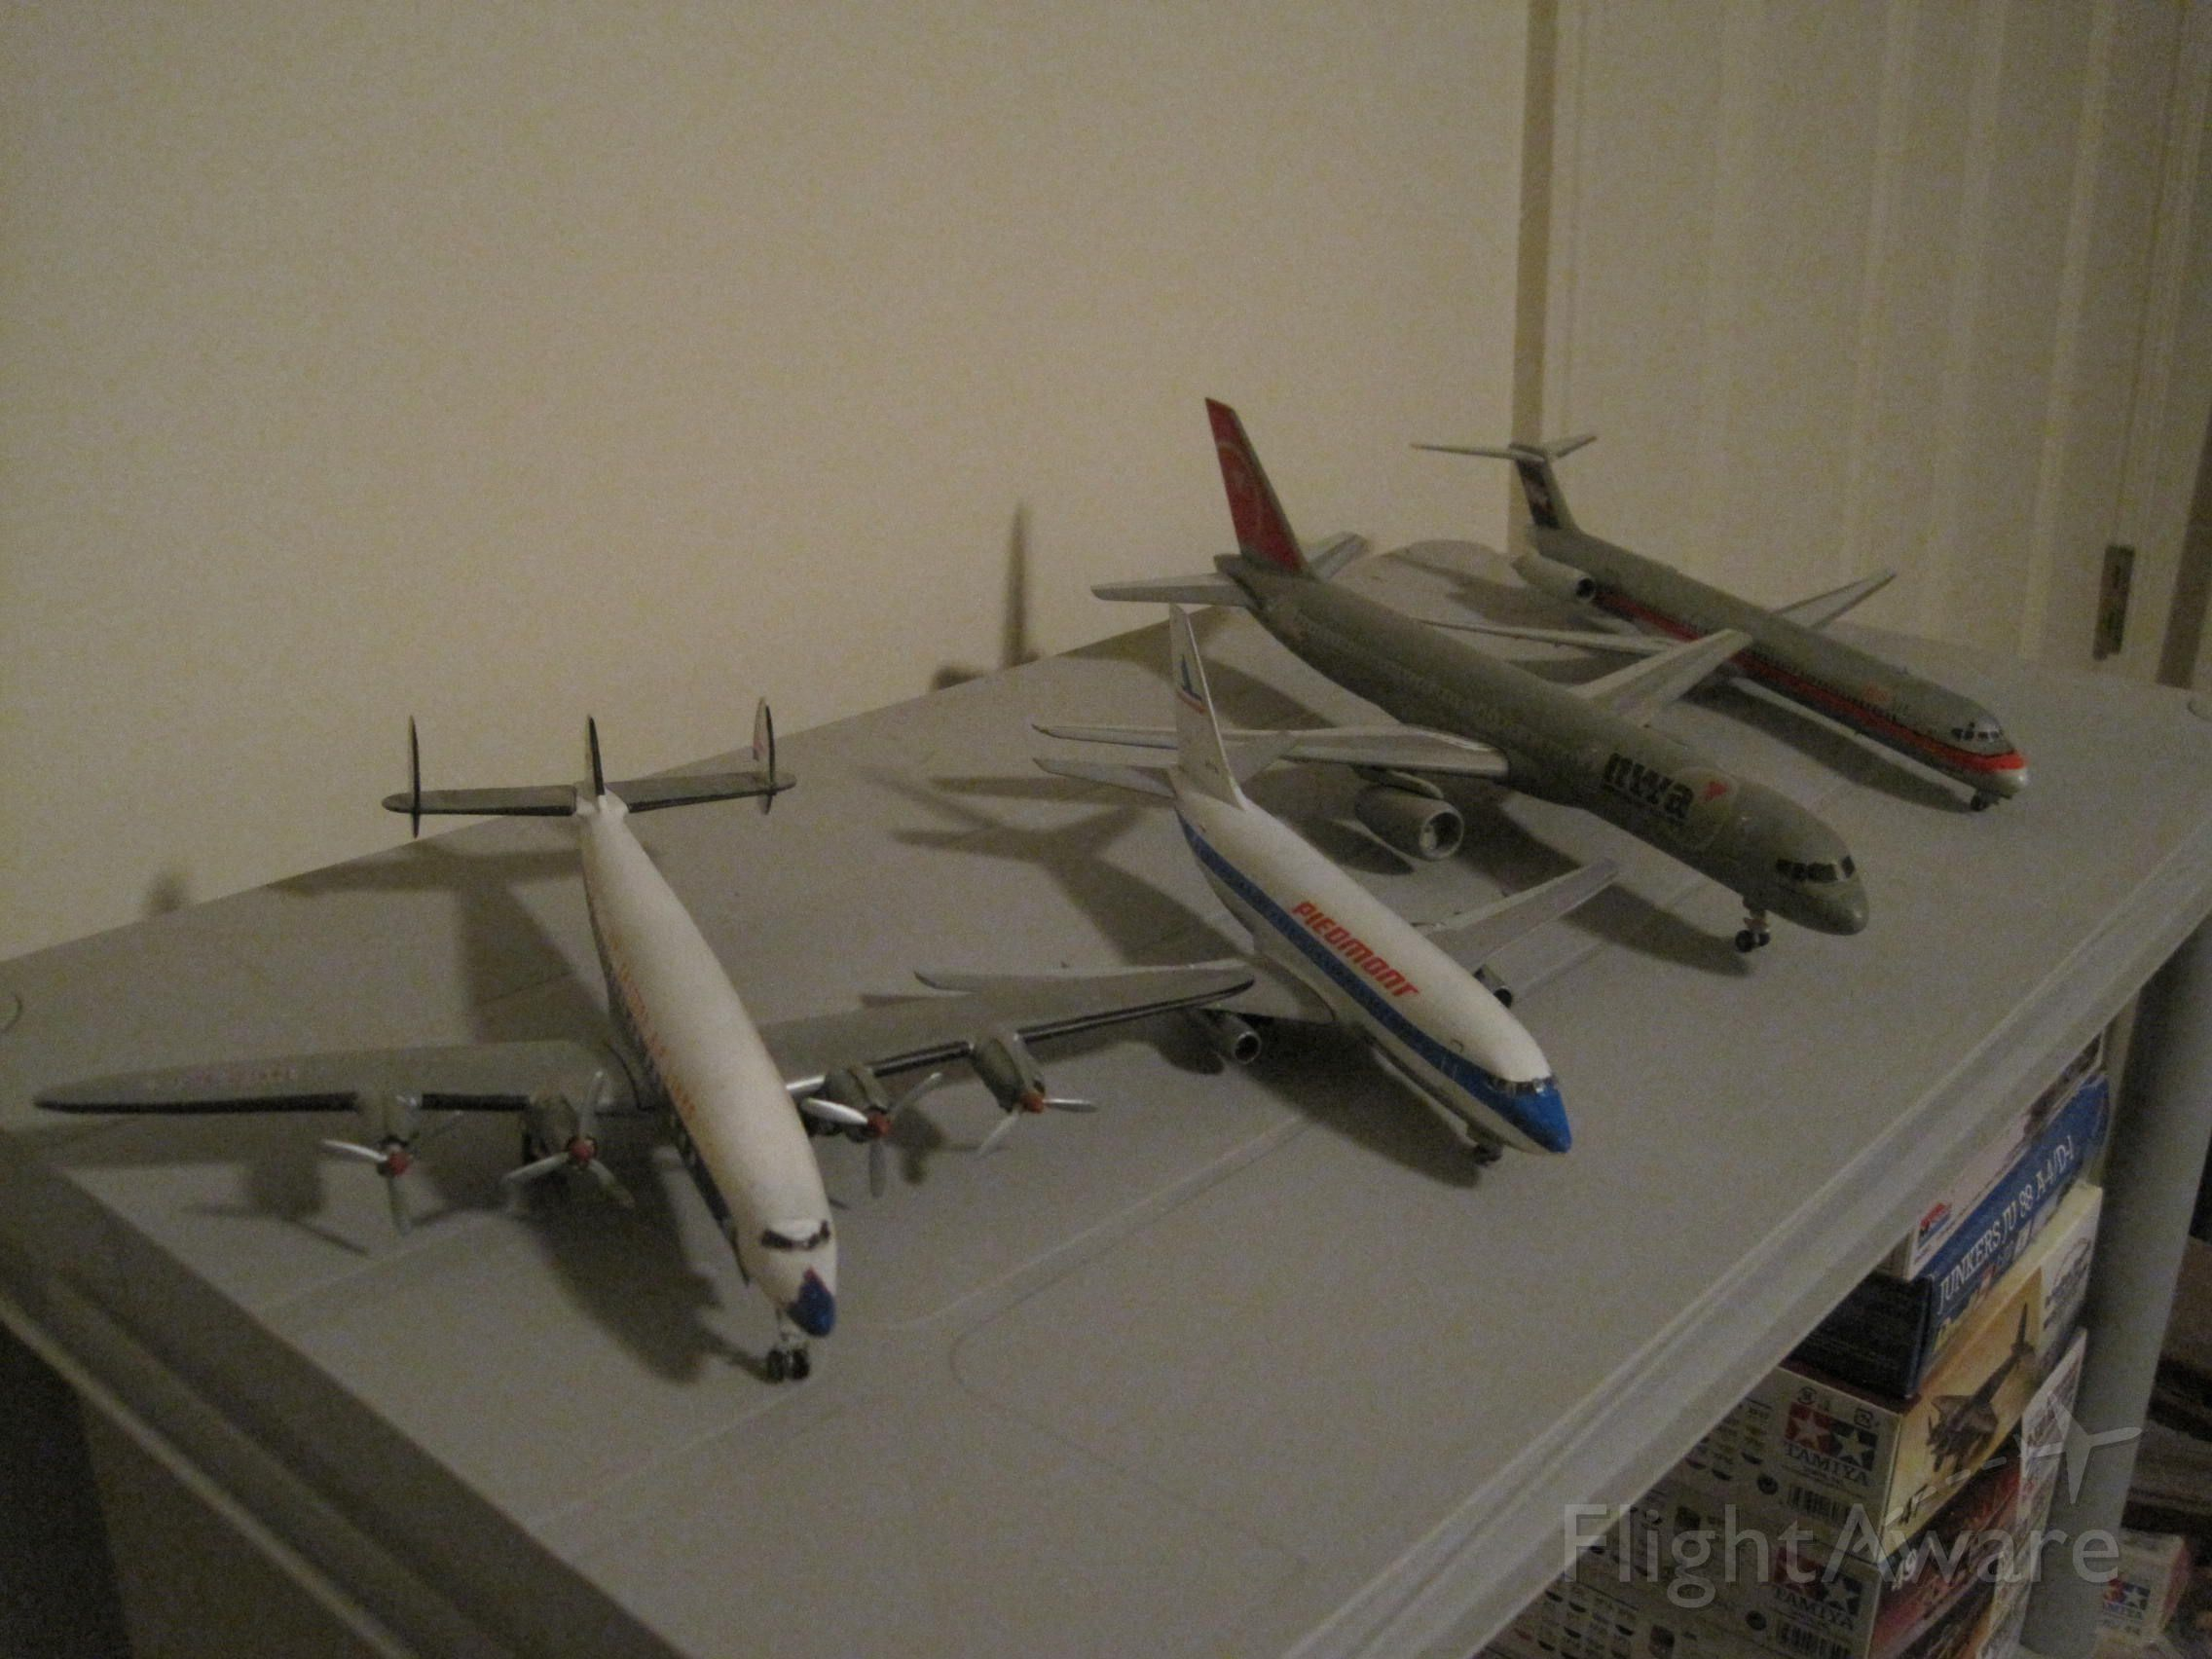 — — - Here are four 1/144 scale model airliners.  A Lockheed Super Constellation in Eastern markings, a Boeing 737-200 in Piedmont colors, a Boeing 757-200 in Northwest markings and a USAir McDonnell-Douglas MD-80.